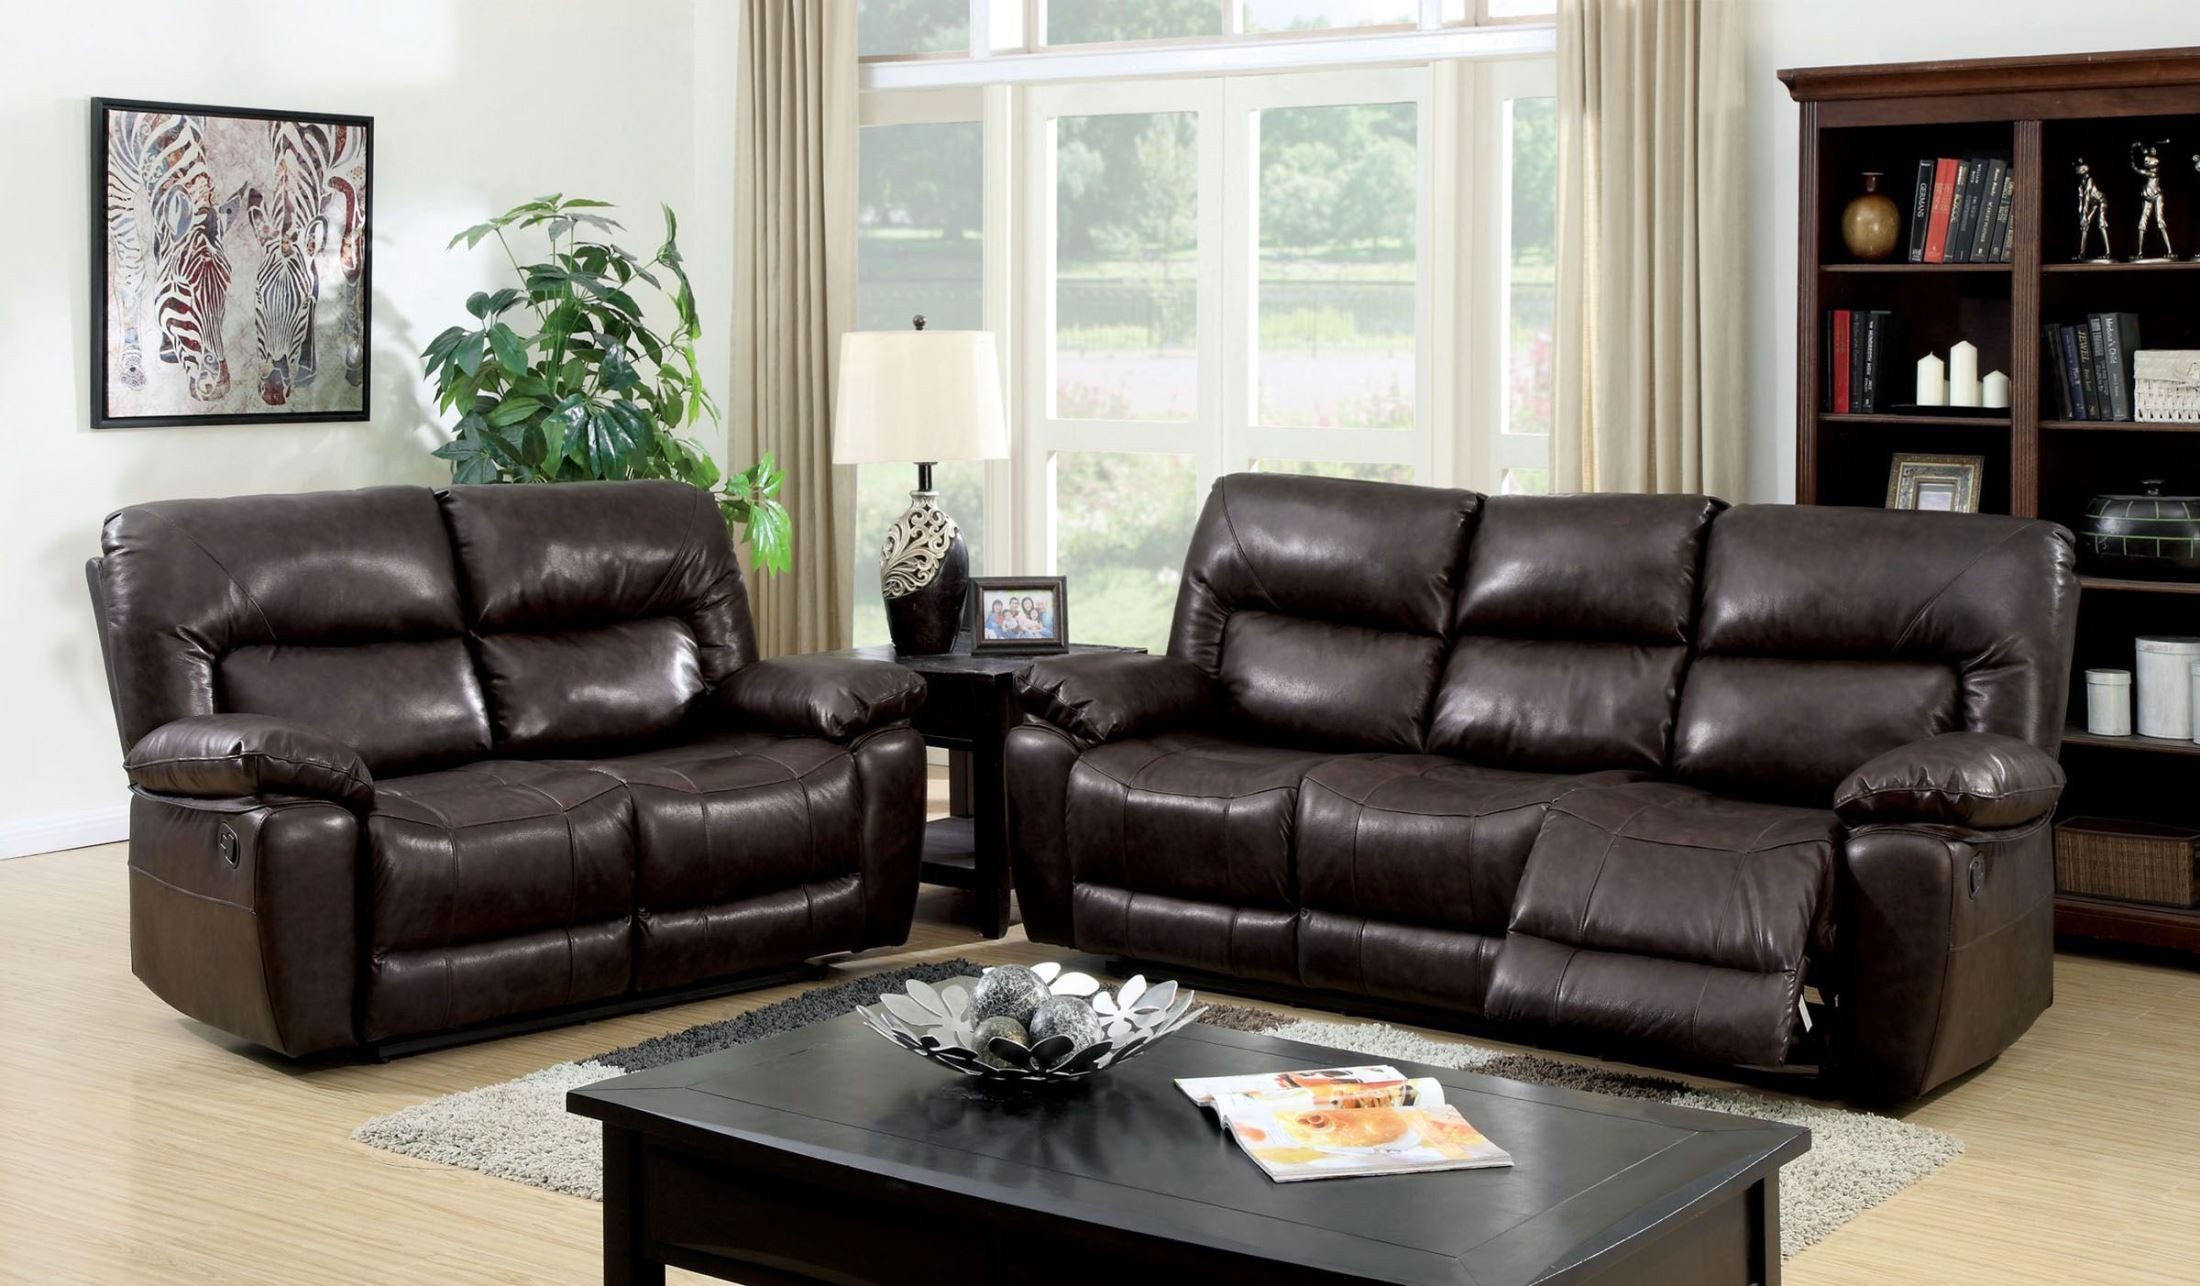 Stallion top grain leather match reclining living room set for Matching living room furniture sets